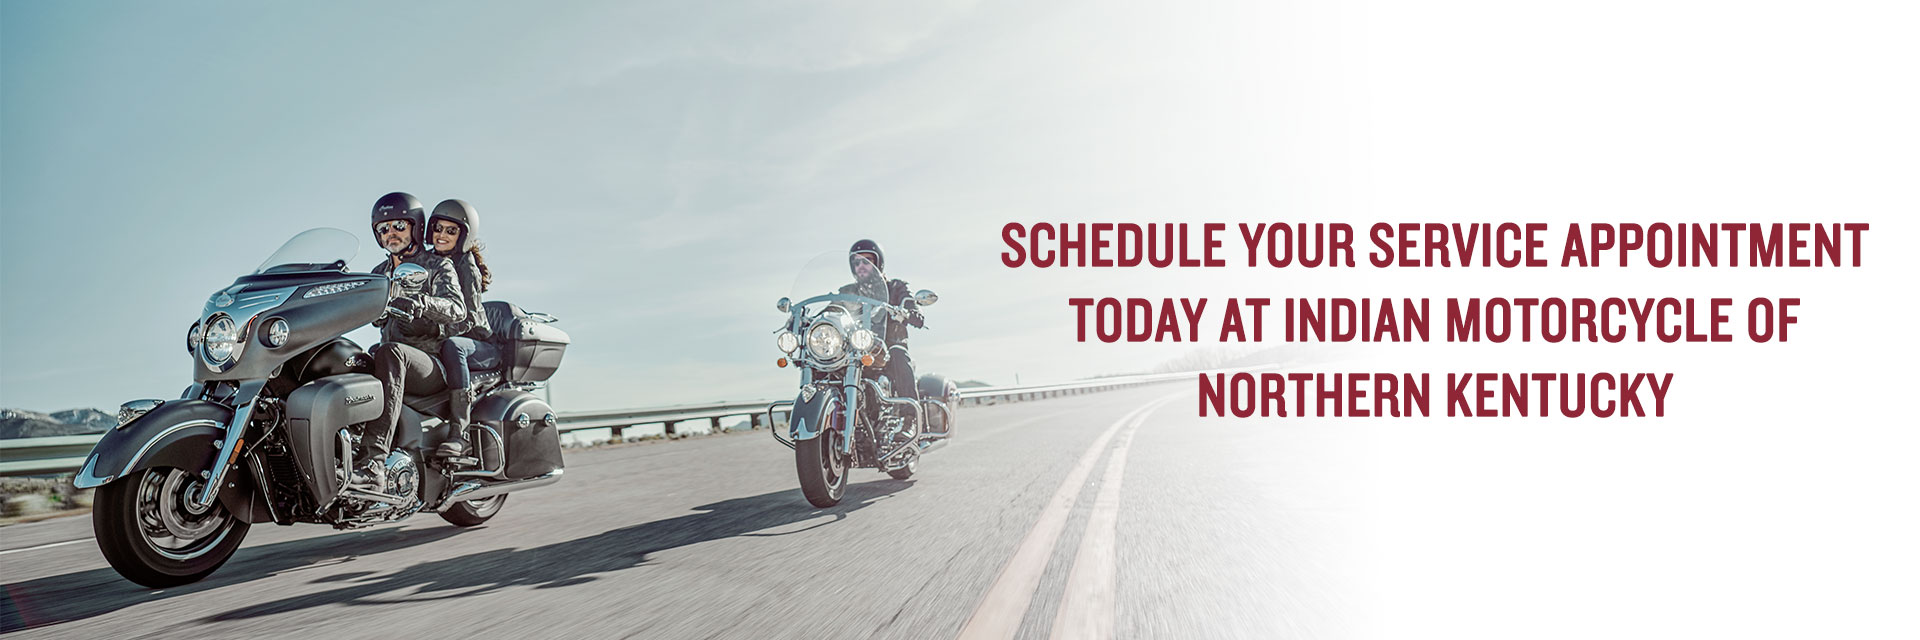 Get service done at Indian Motorcycle of Northern Kentucky